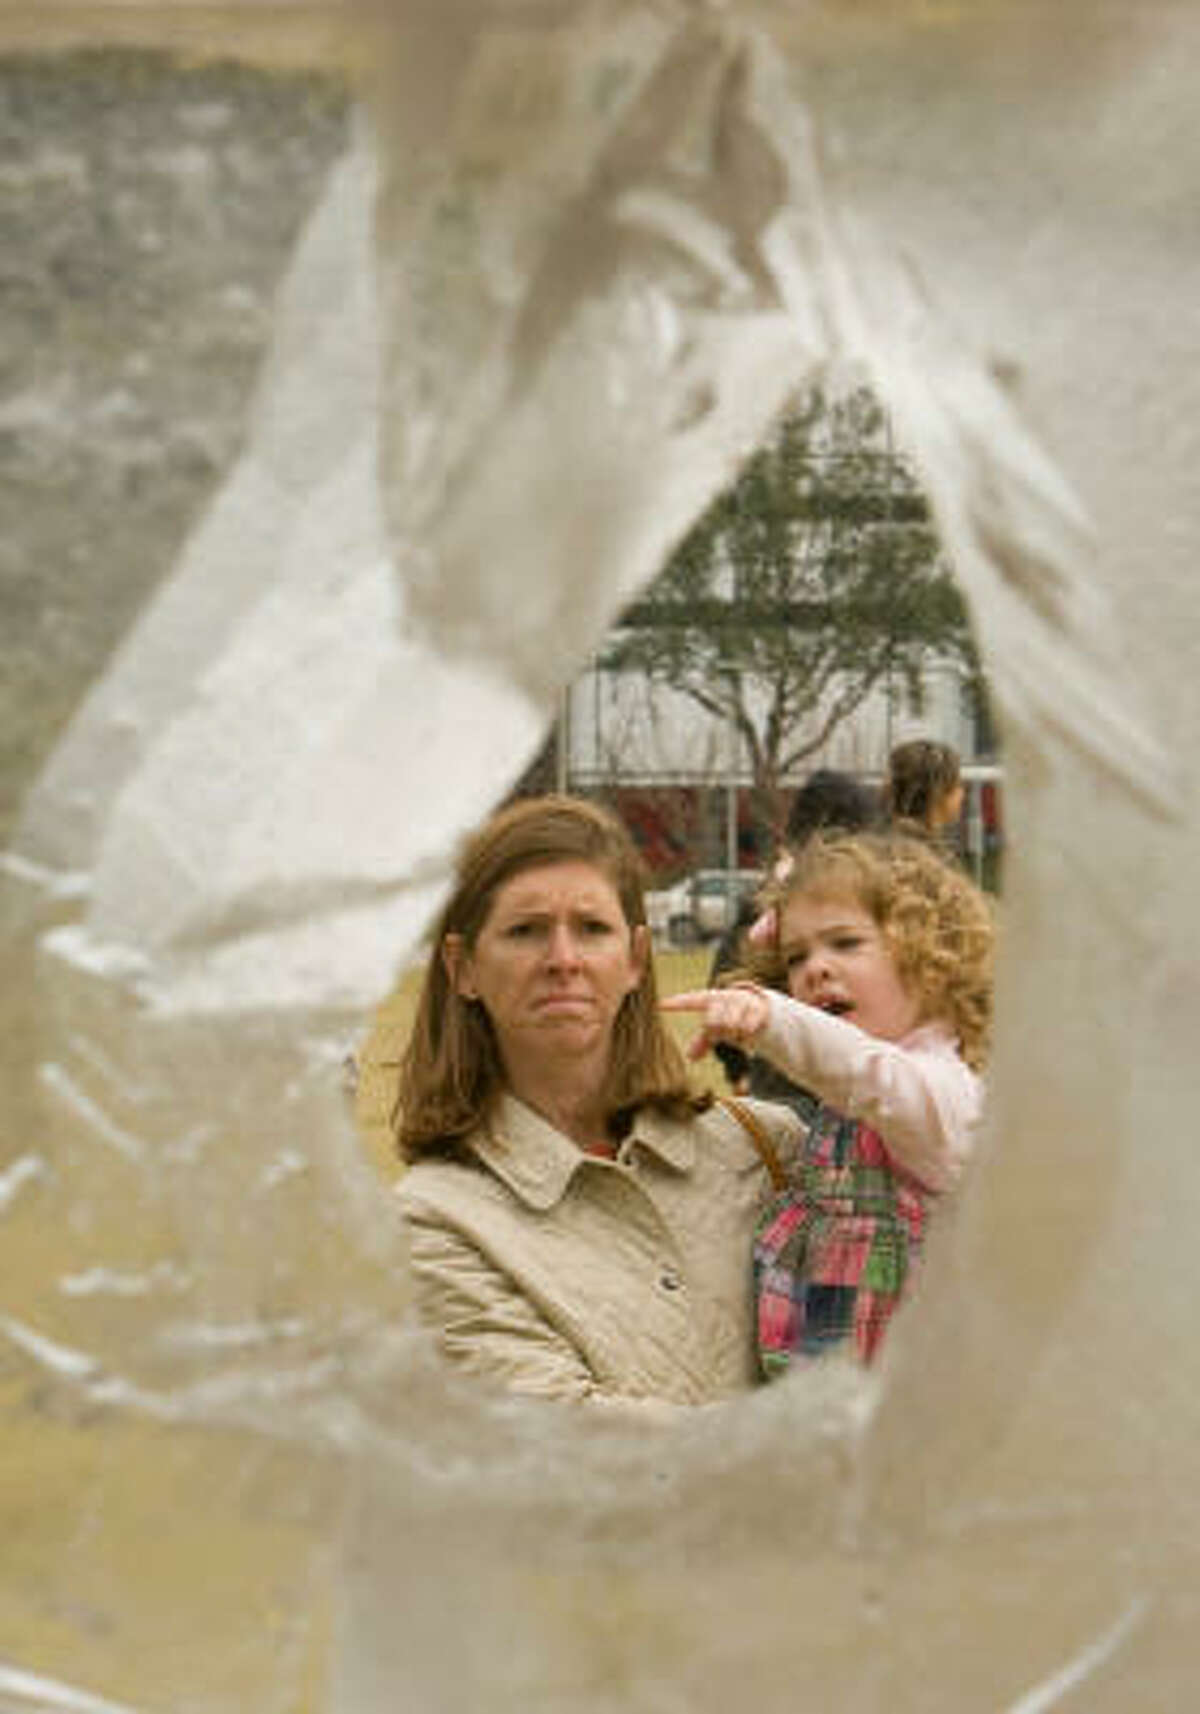 Leslie Wade of Houston and her 2-year-old daughter, Elizabeth Wade, look at some of the ice sculptures. Seven acclaimed ice sculptors carved, shaved and sculpted 7 tons of ice in Houston's inaugural ice sculpting competition.